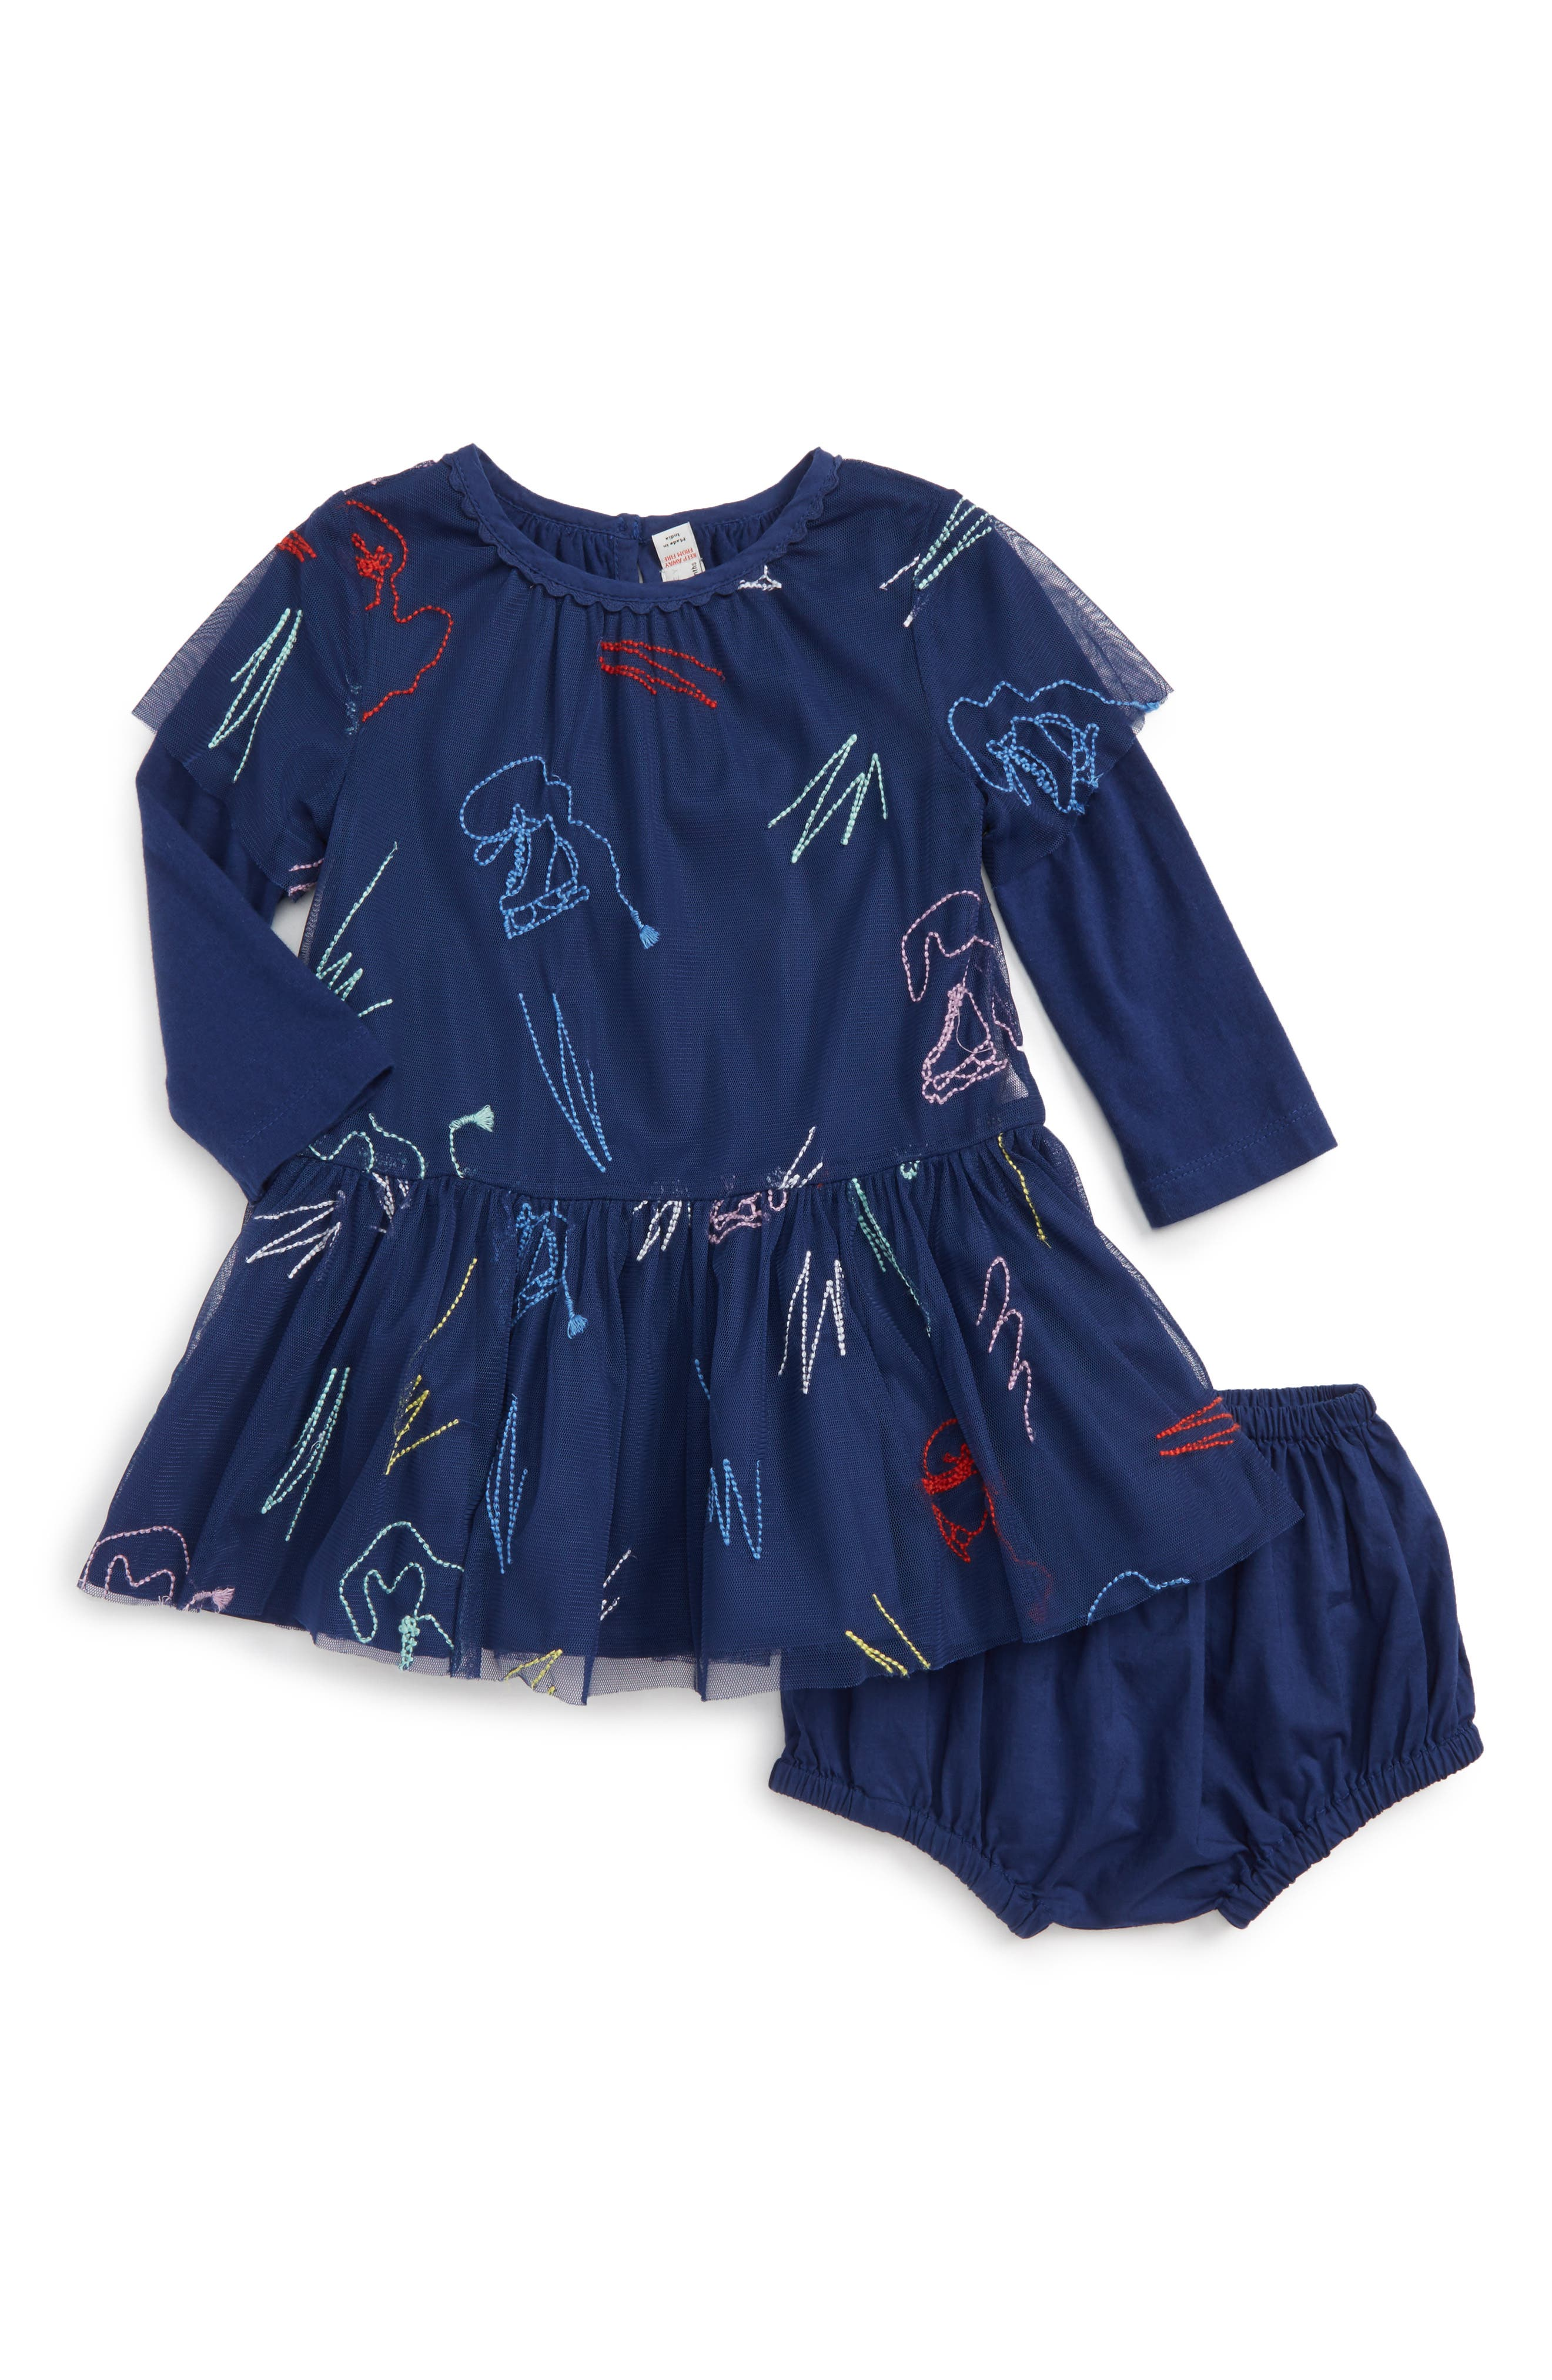 Kids Embroidered Tulle Dress,                             Main thumbnail 1, color,                             Blue